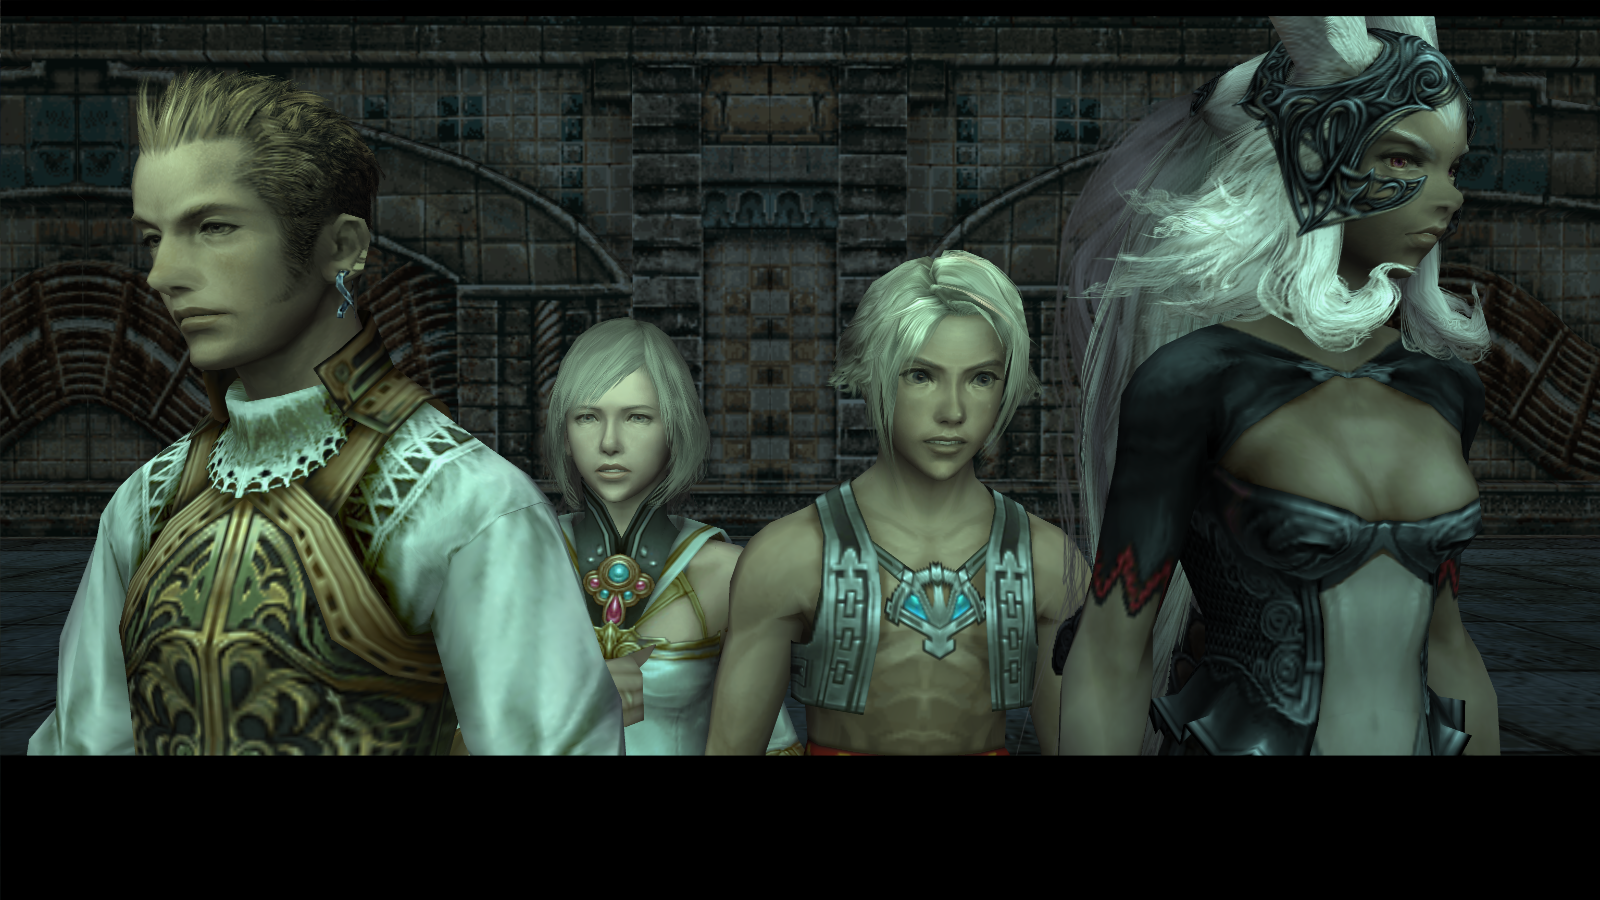 Final Fantasy 12 Wallpaper: Final Fantasy XII Wallpaper And Background Image